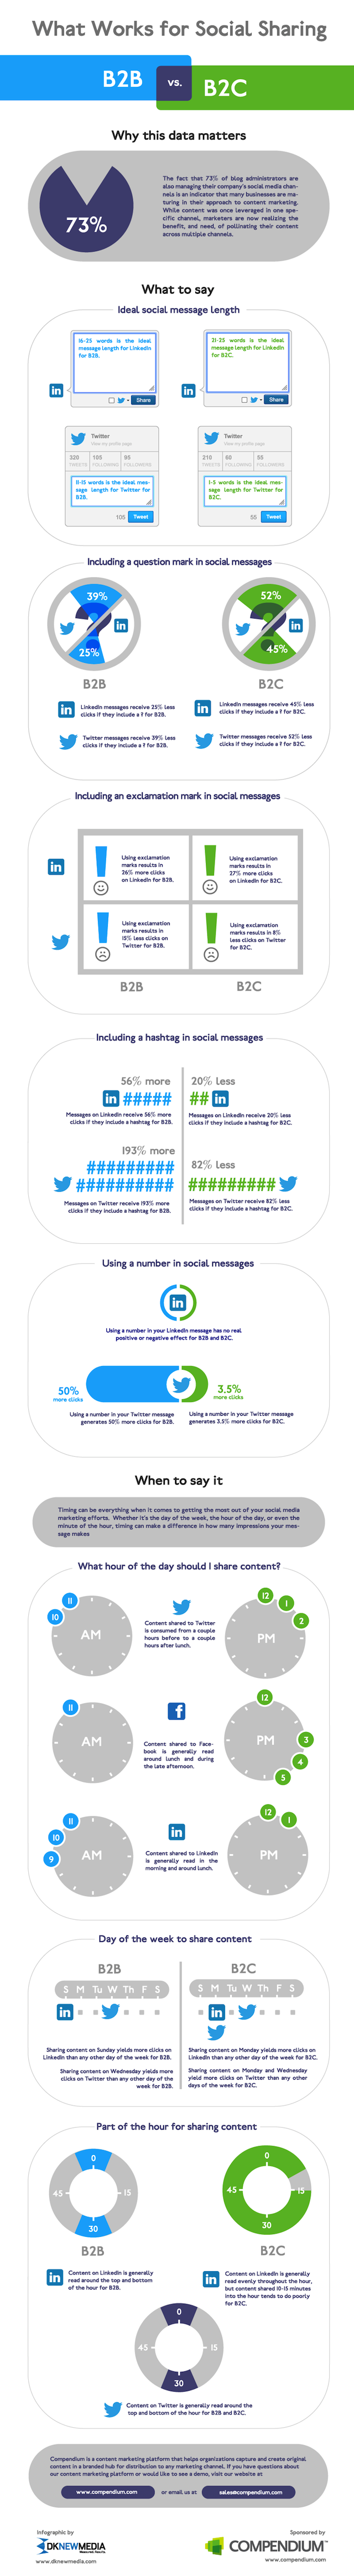 B2B and B2C social sharing infographic